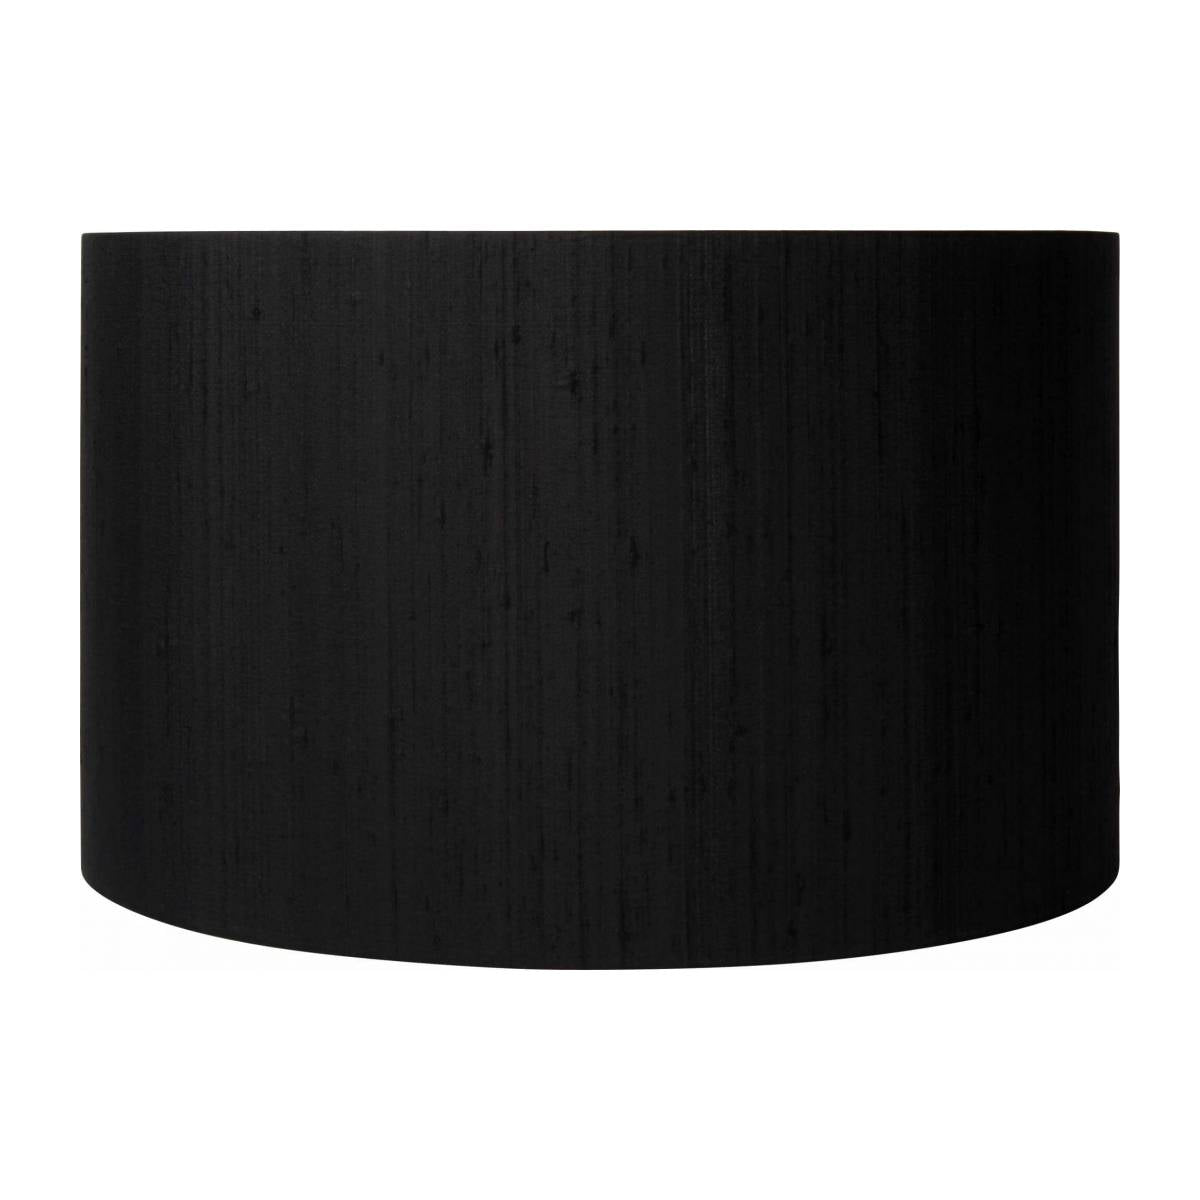 DRUM SILK/ DRUM SHADE 40x24 BK